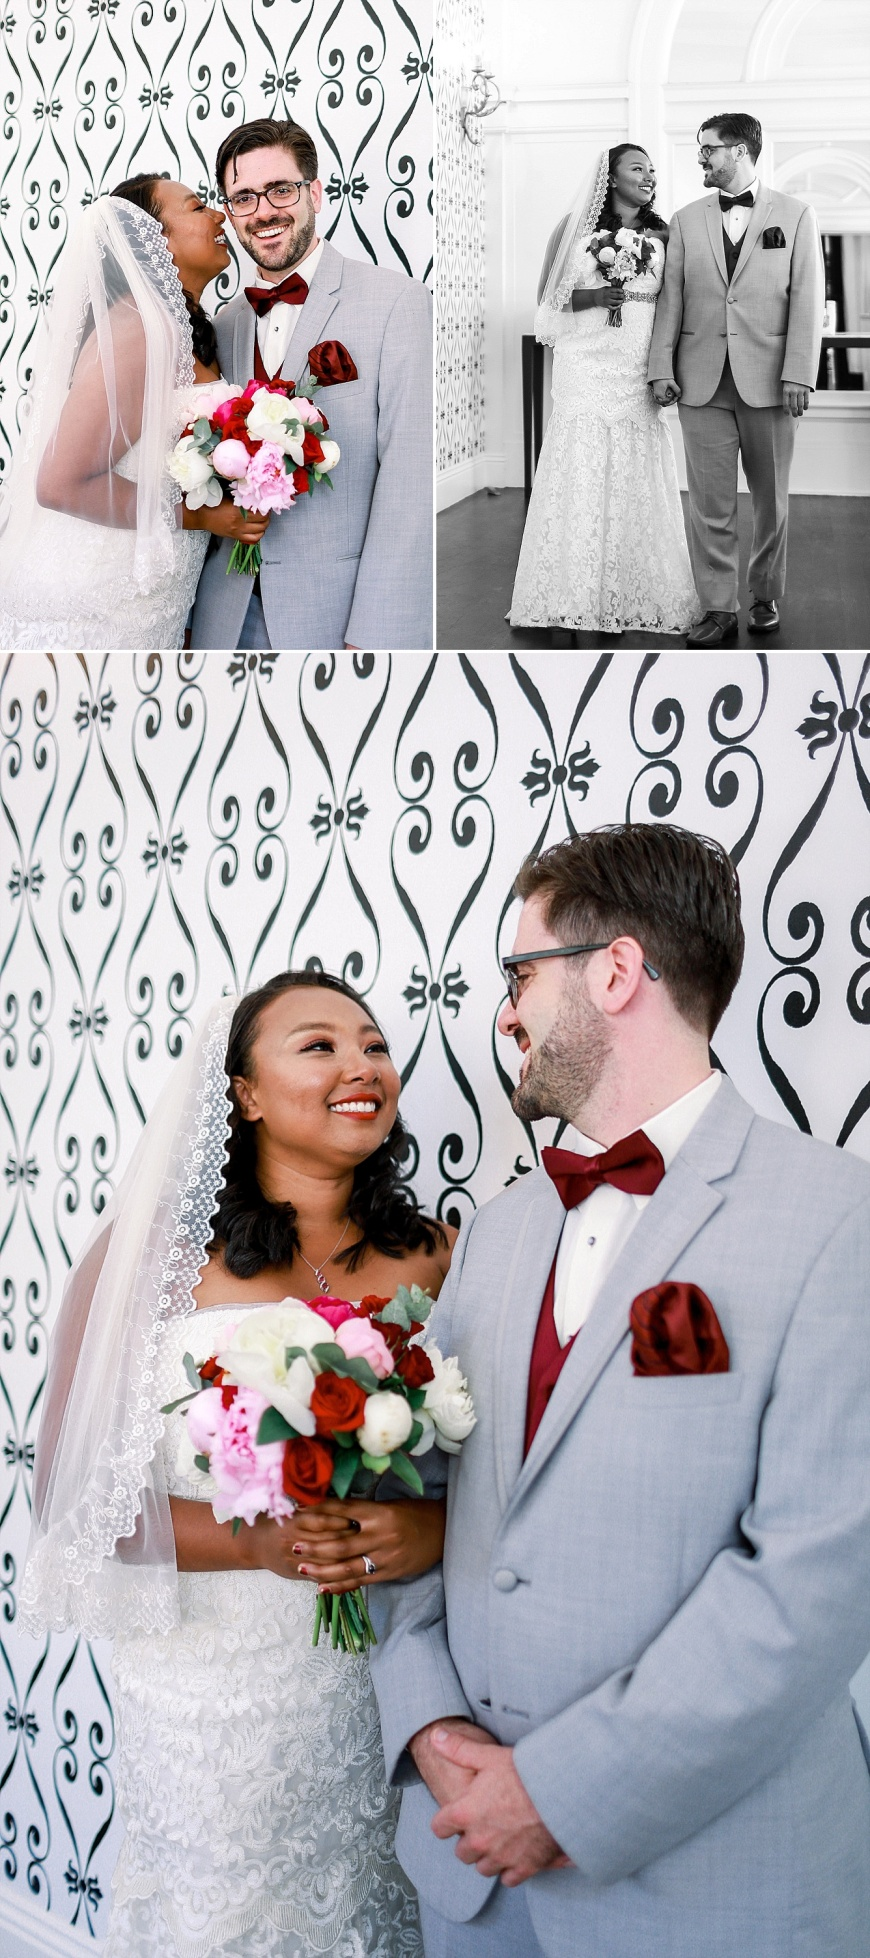 Hotel-Shattuck-Downtown-Berkeley-Wedding-Photographer_1029.jpg